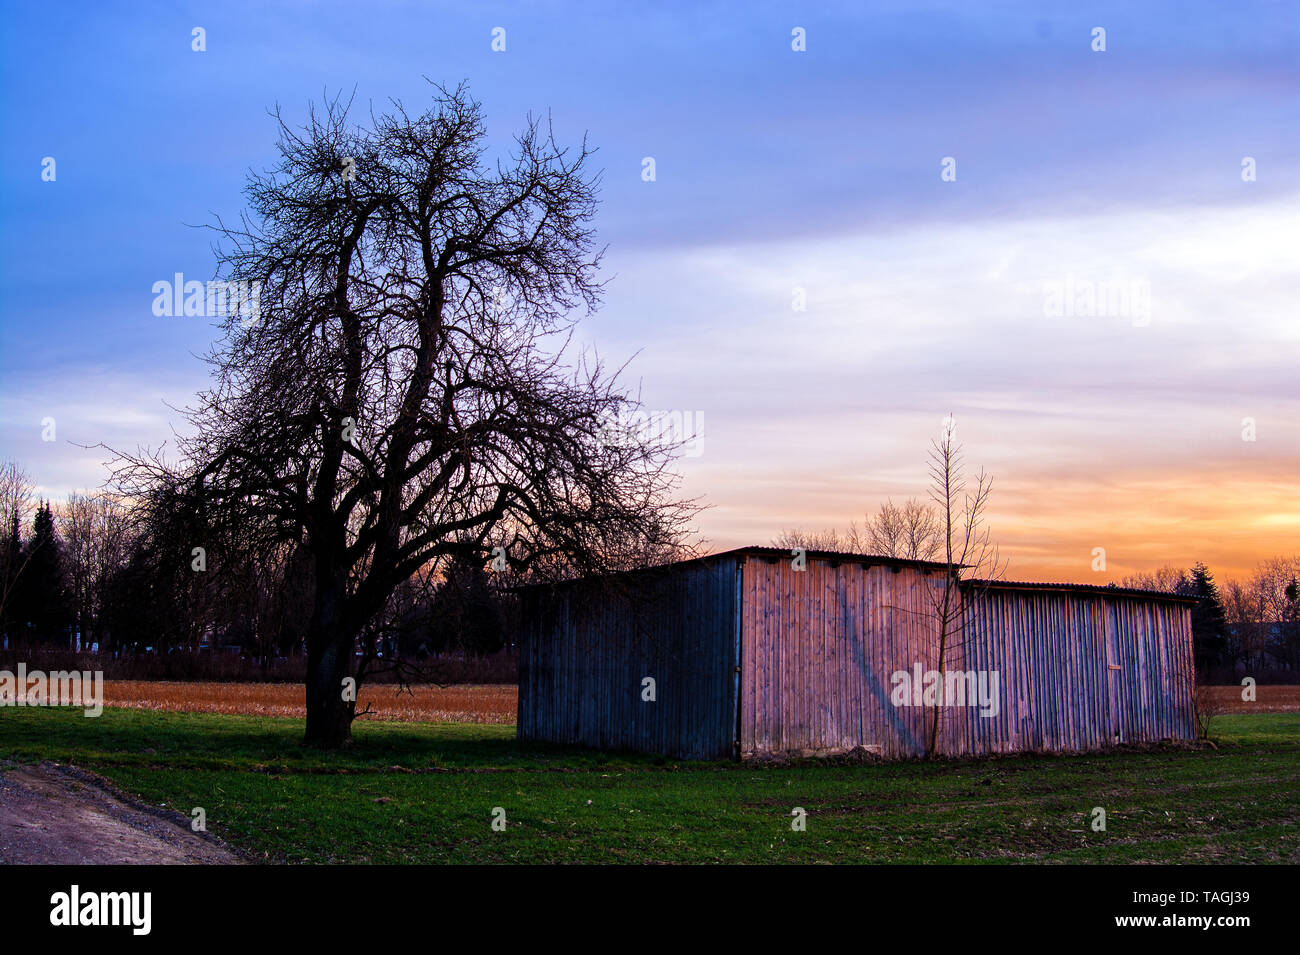 The wooden barn - Stock Image